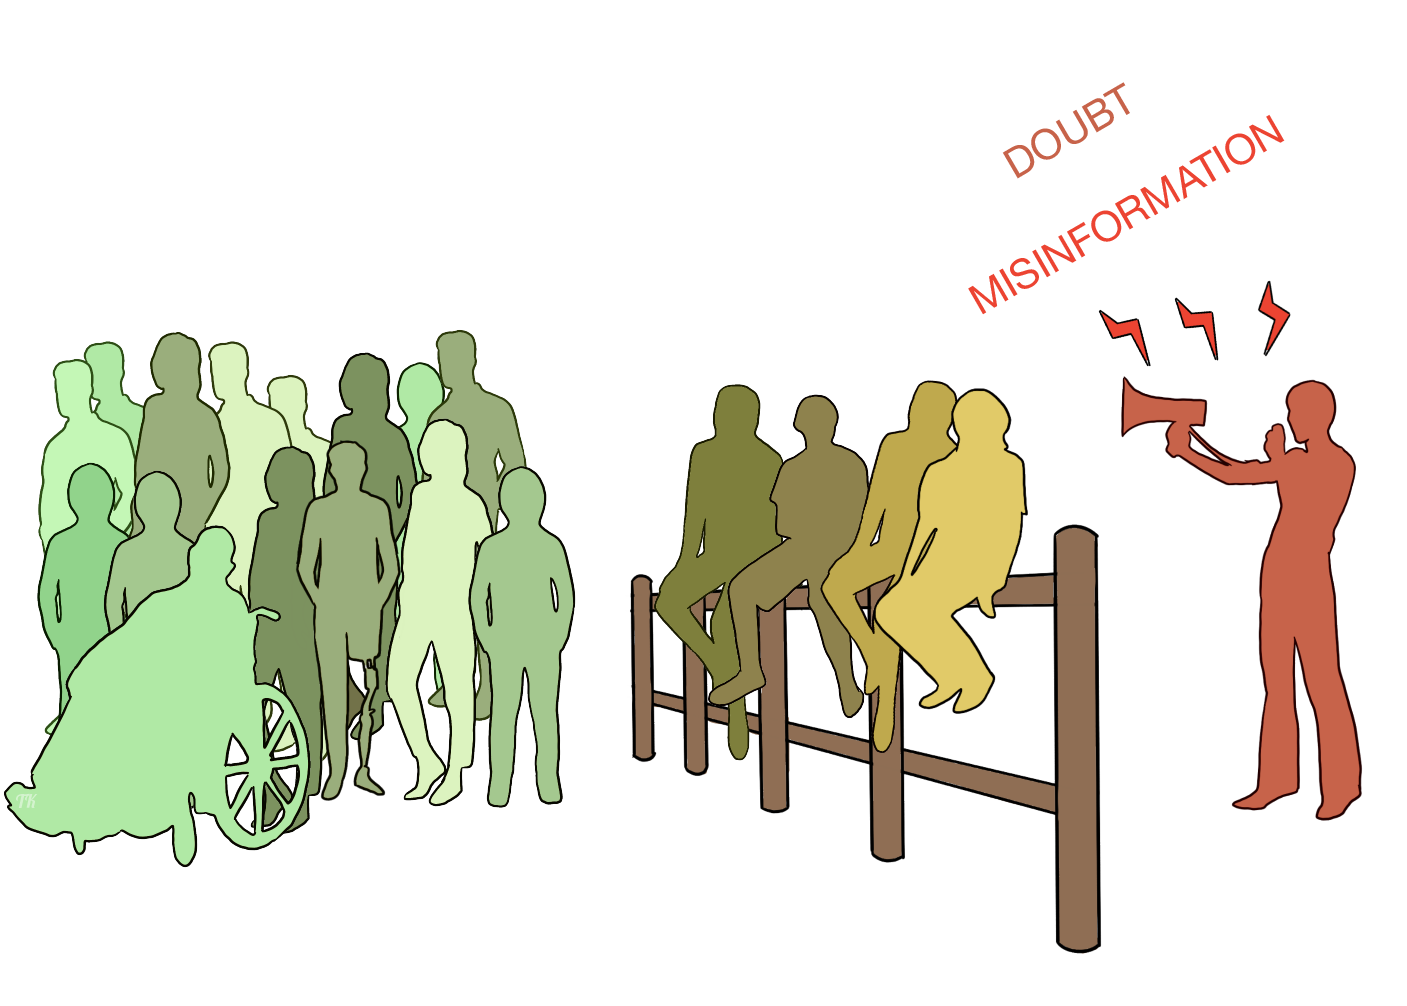 """15 figures colored green are standing on the left side of a fence, facing the left. 4 figures colored yellow are sitting on a fence facing the right 1 figure colored red is holding a megaphone facing the left, shouting """"DOUBT"""" and """"MISINFORMATION""""."""